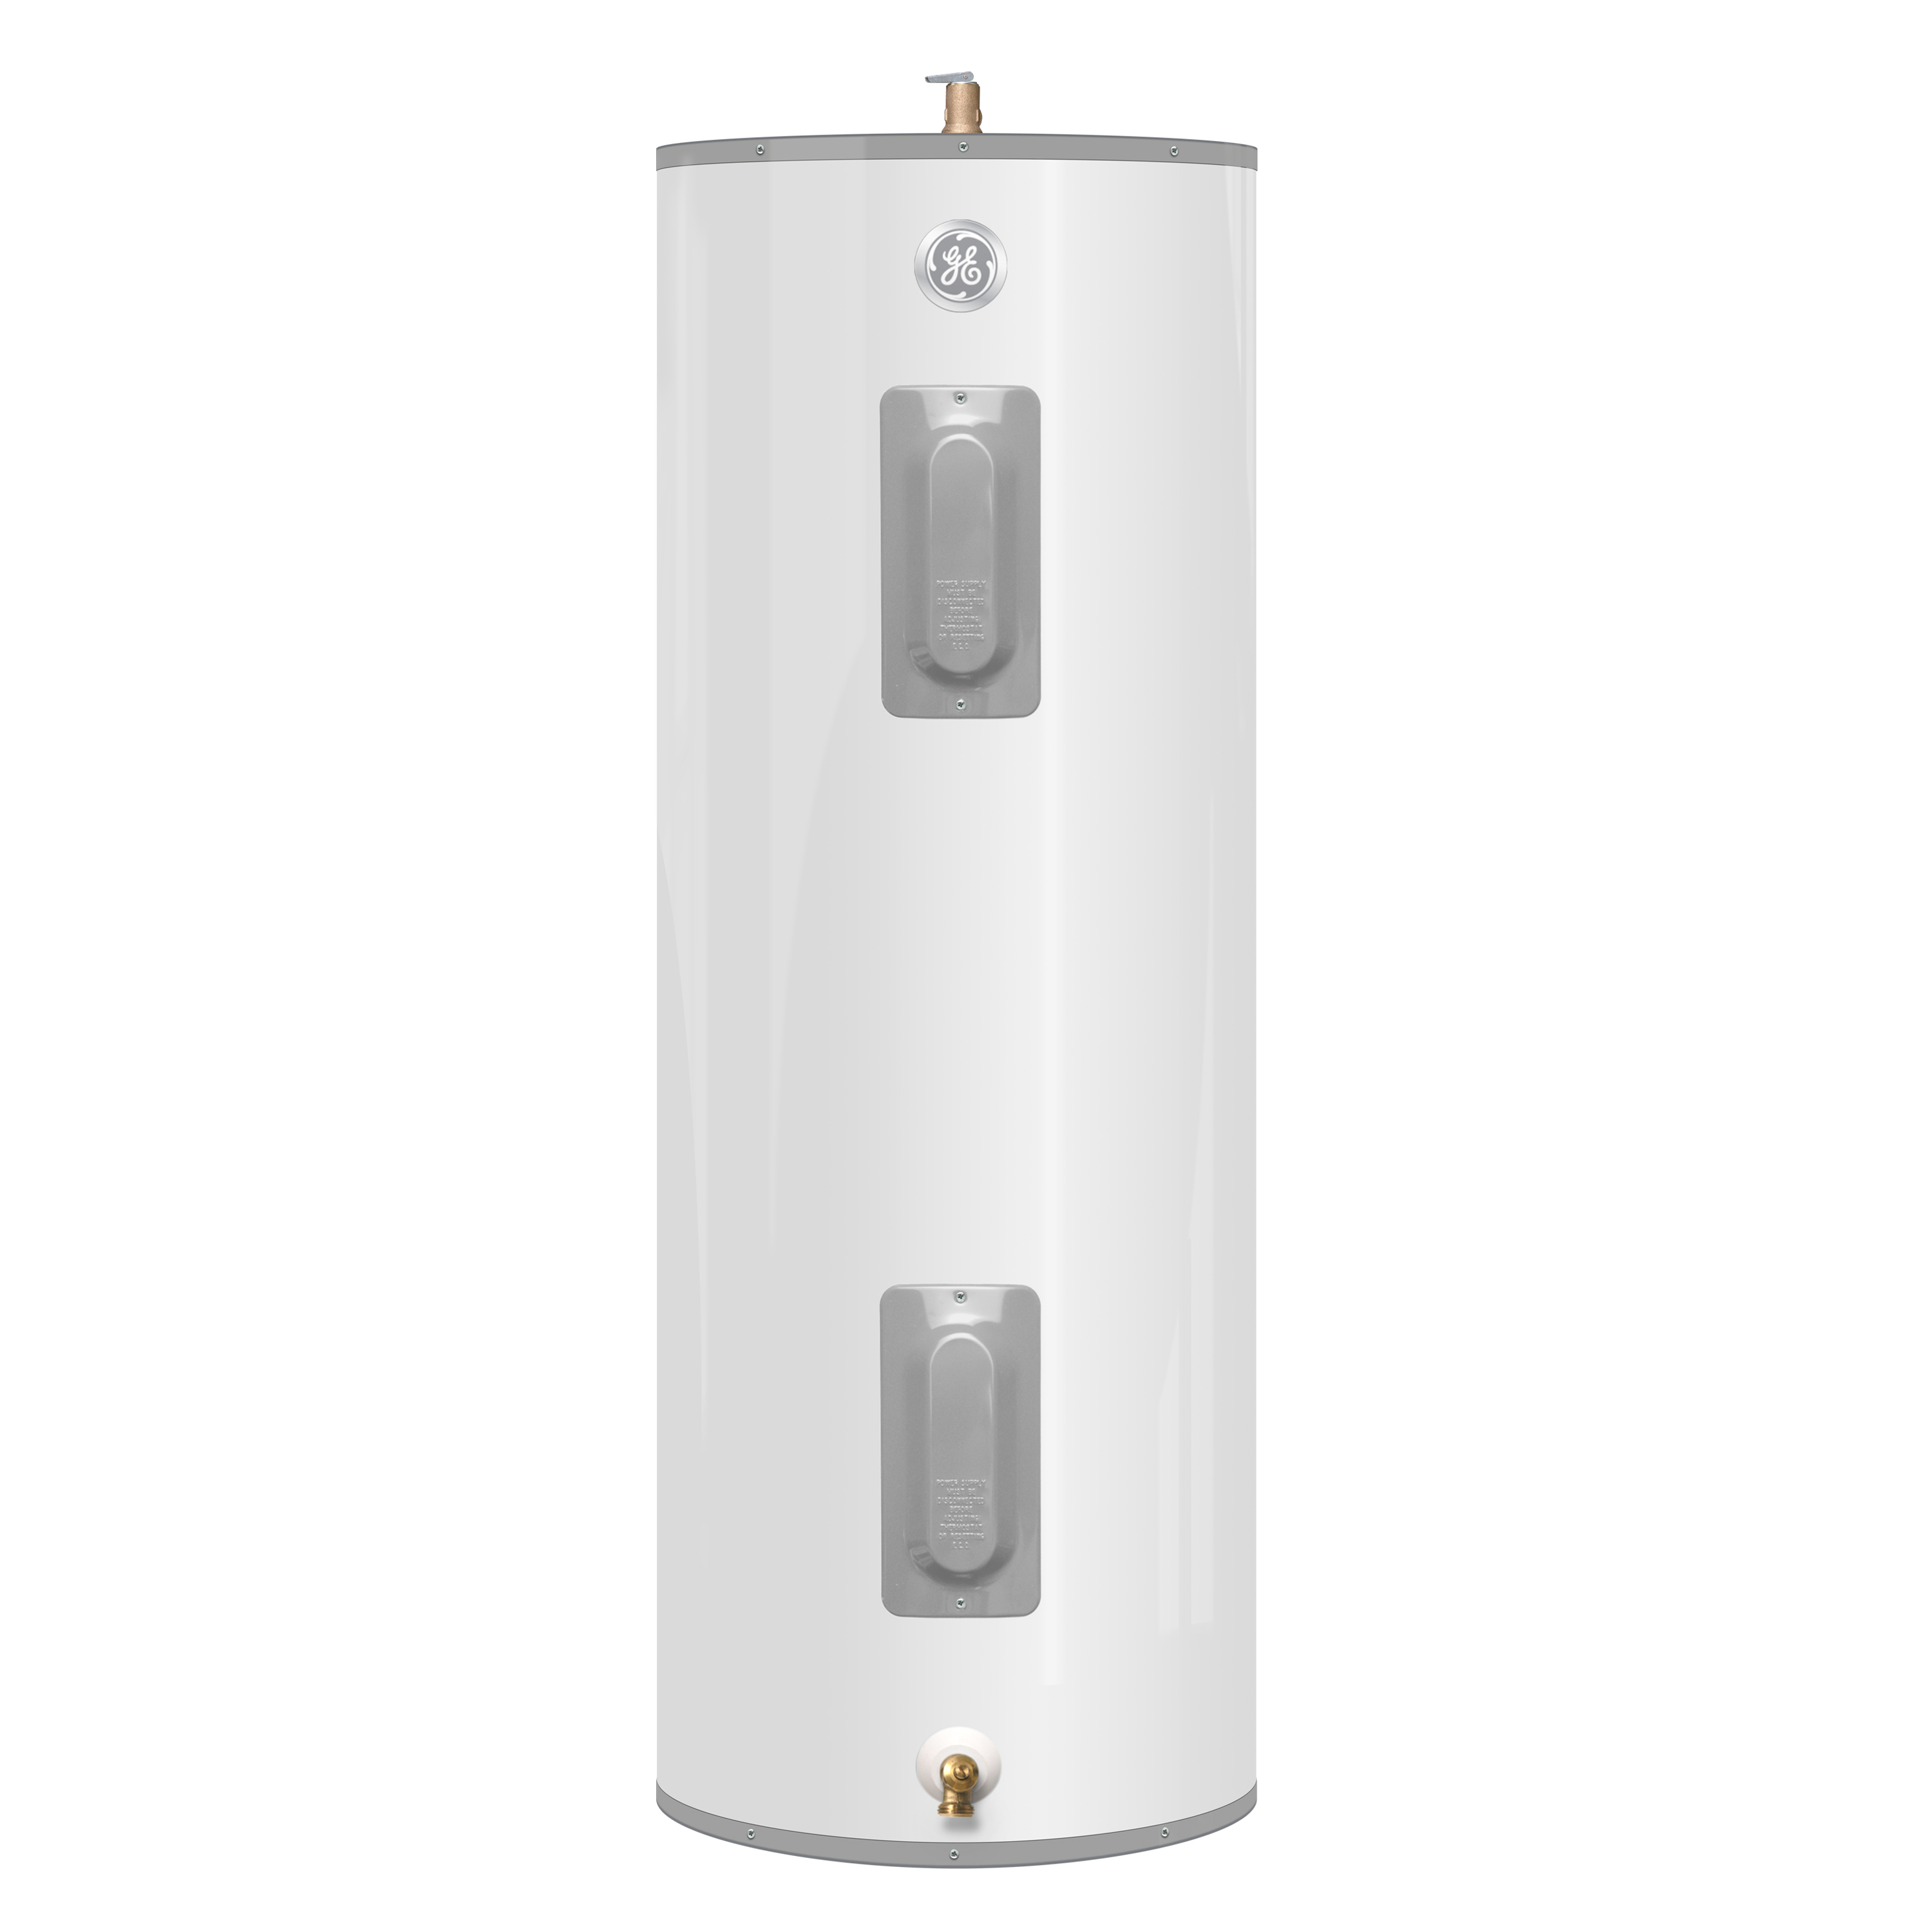 Ge 174 Electric Water Heater Se50t12aah Ge Appliances